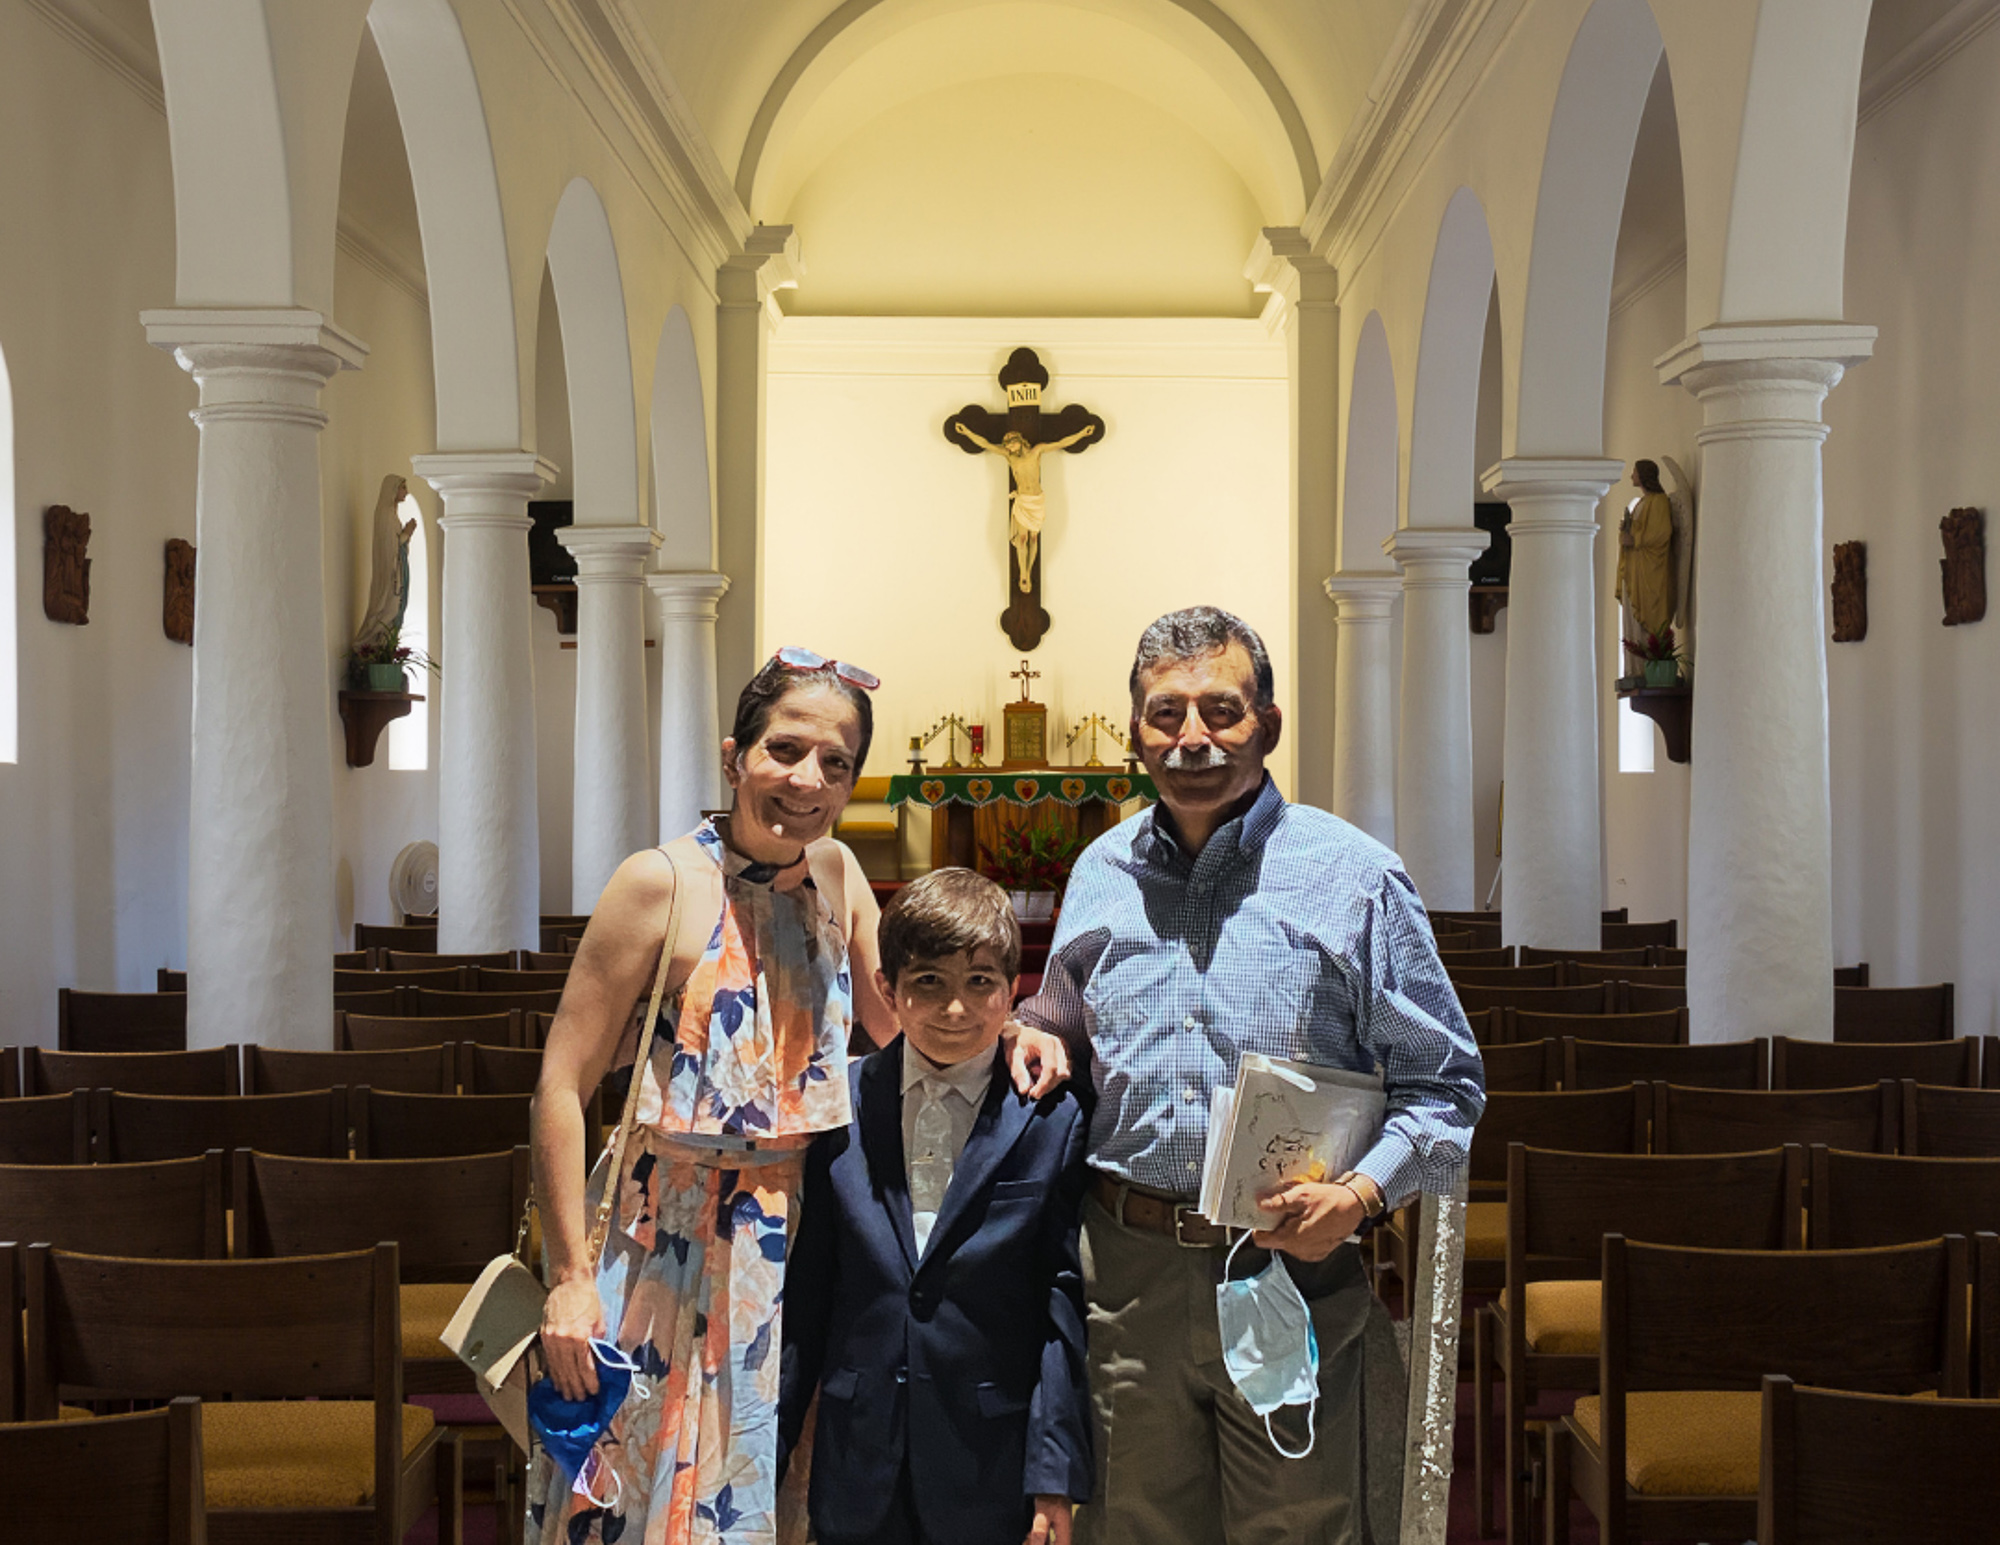 A mother and father stand in a church with a 10-year-old boy between them. They all smile at the camera. A crucifix can be seen in the background.